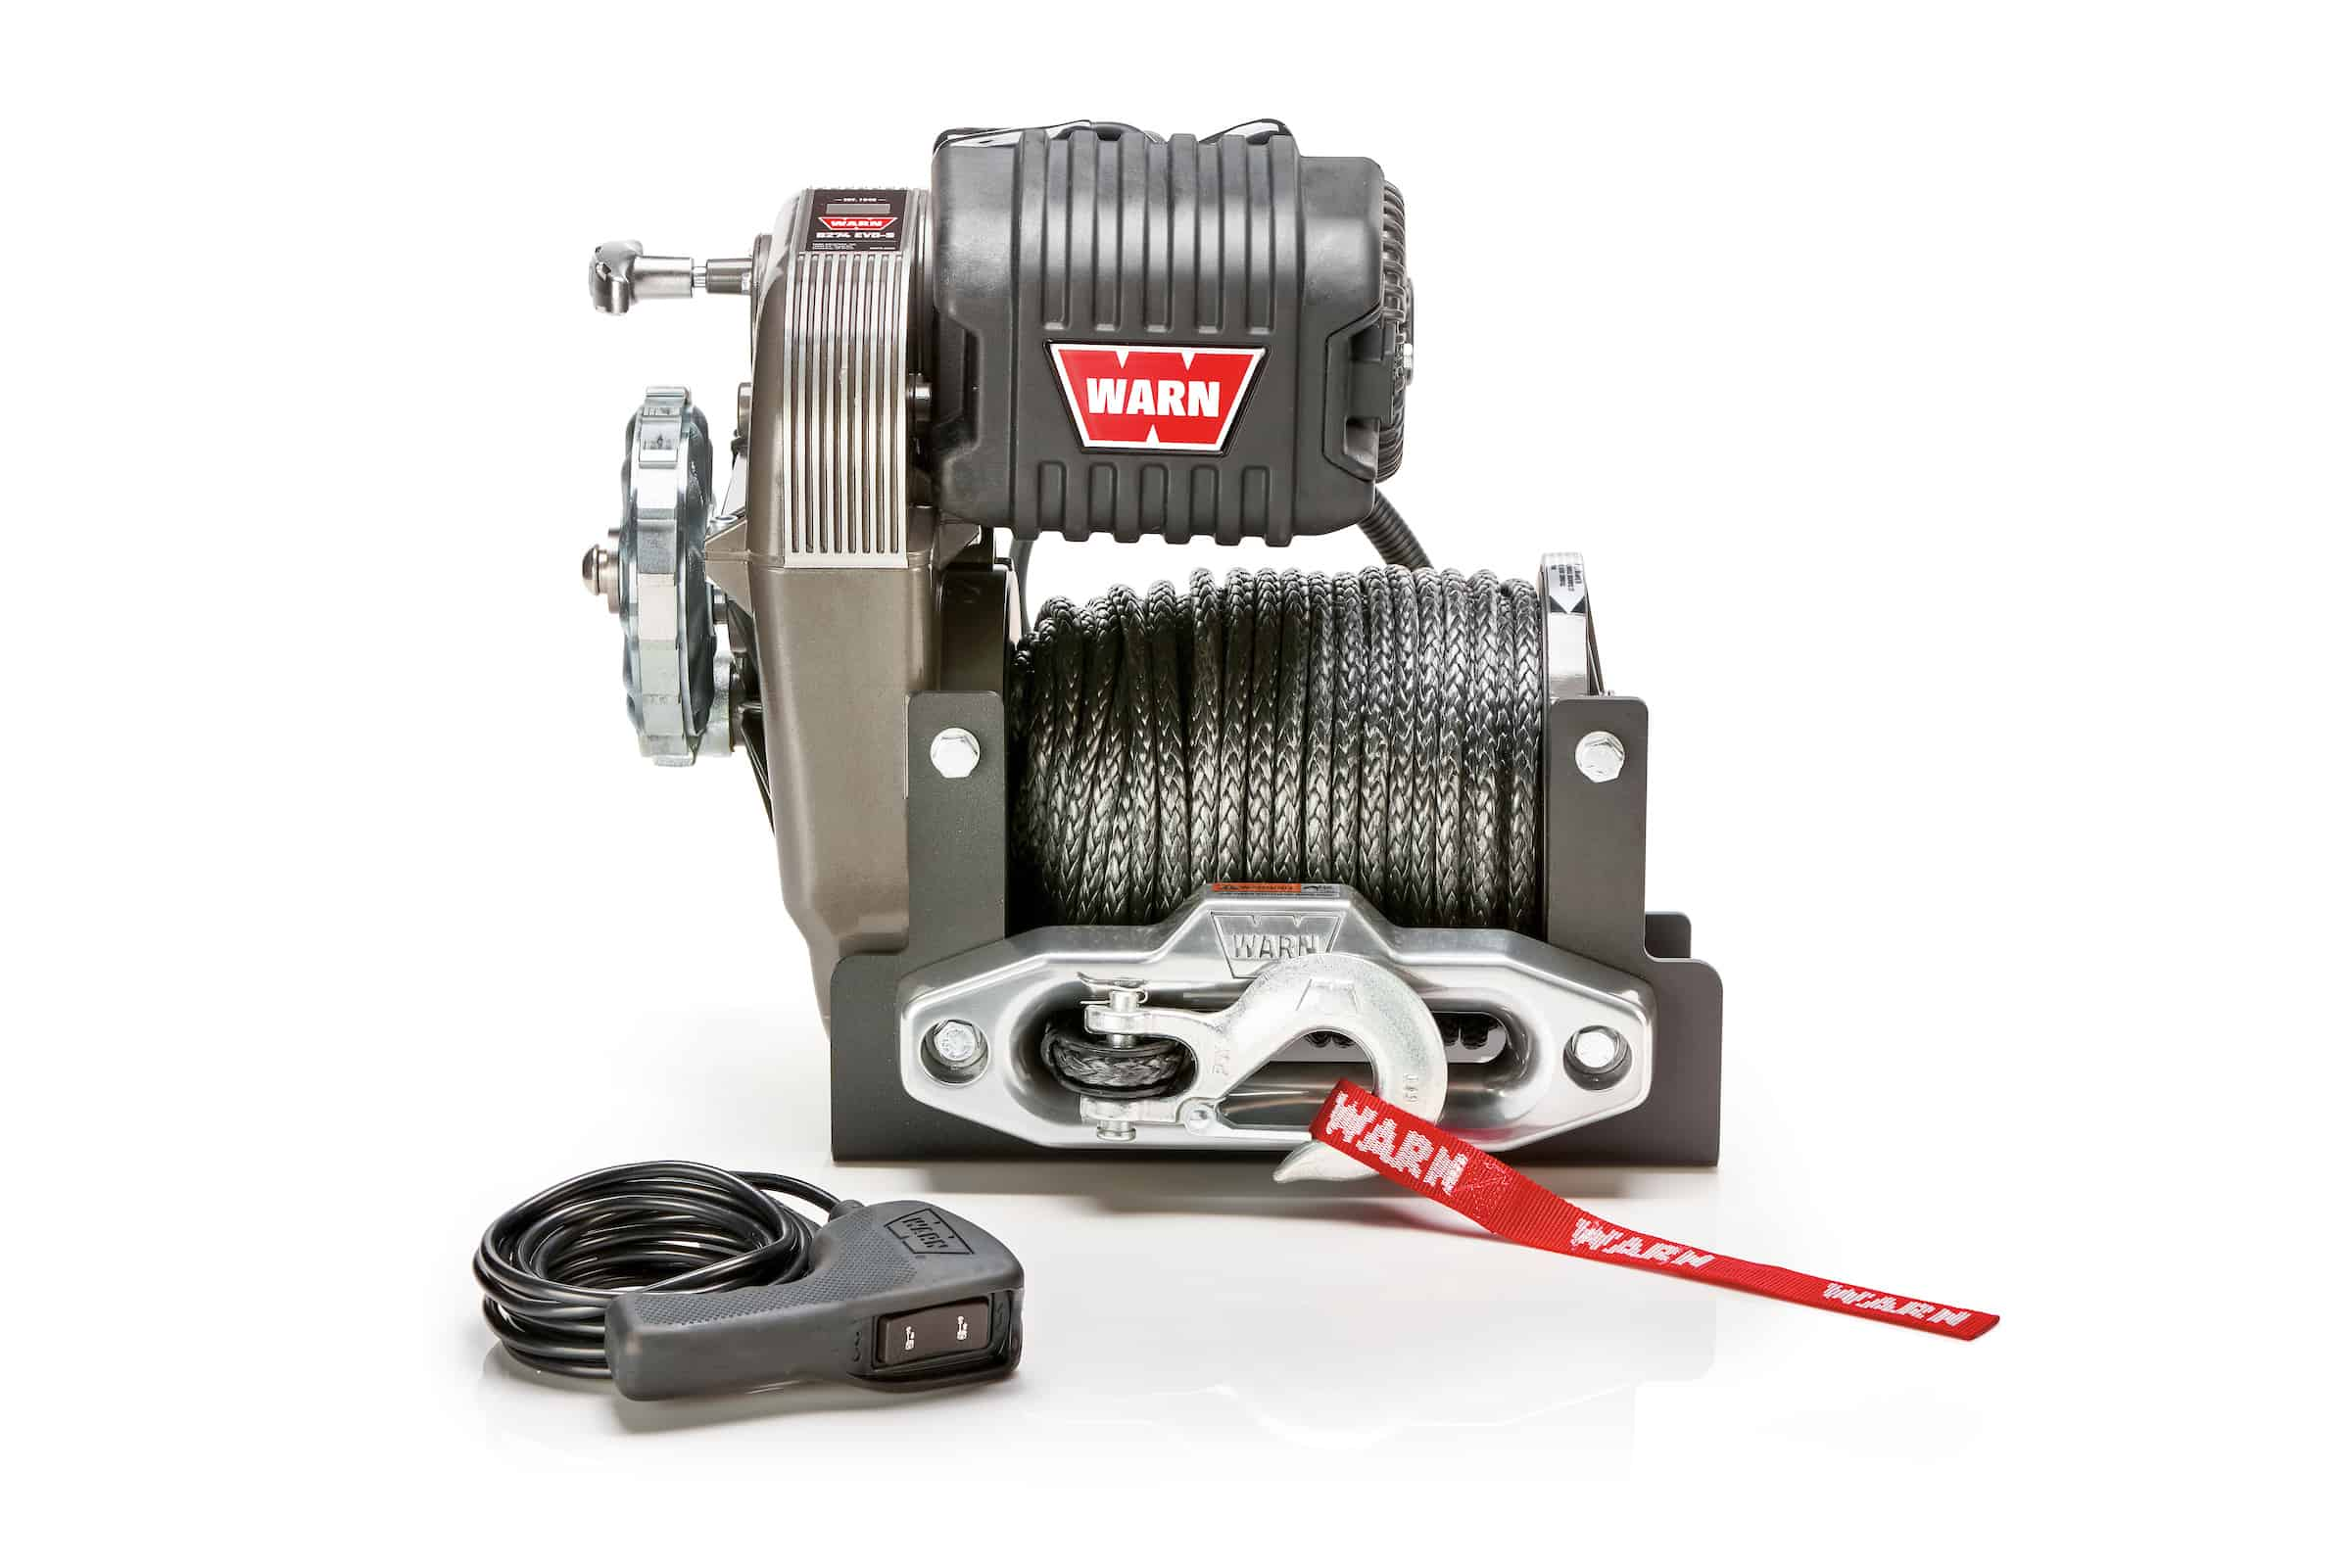 new WARN M8274-S winch with synthetic rope